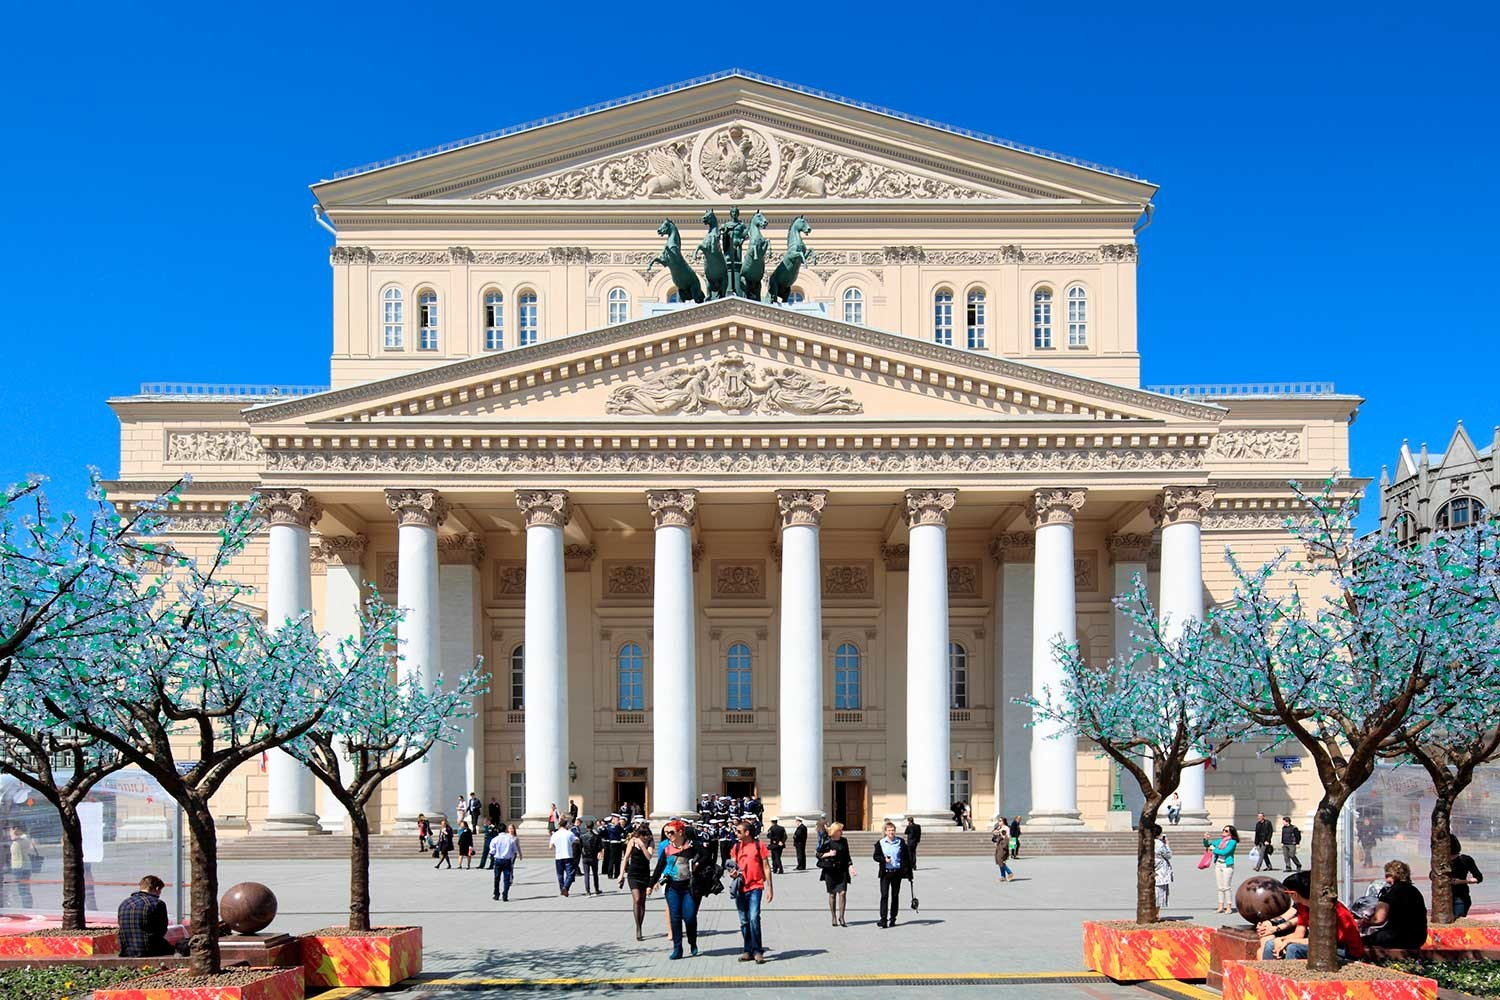 The Bolshoi Theatre began its history as an Englishmen's enterprise